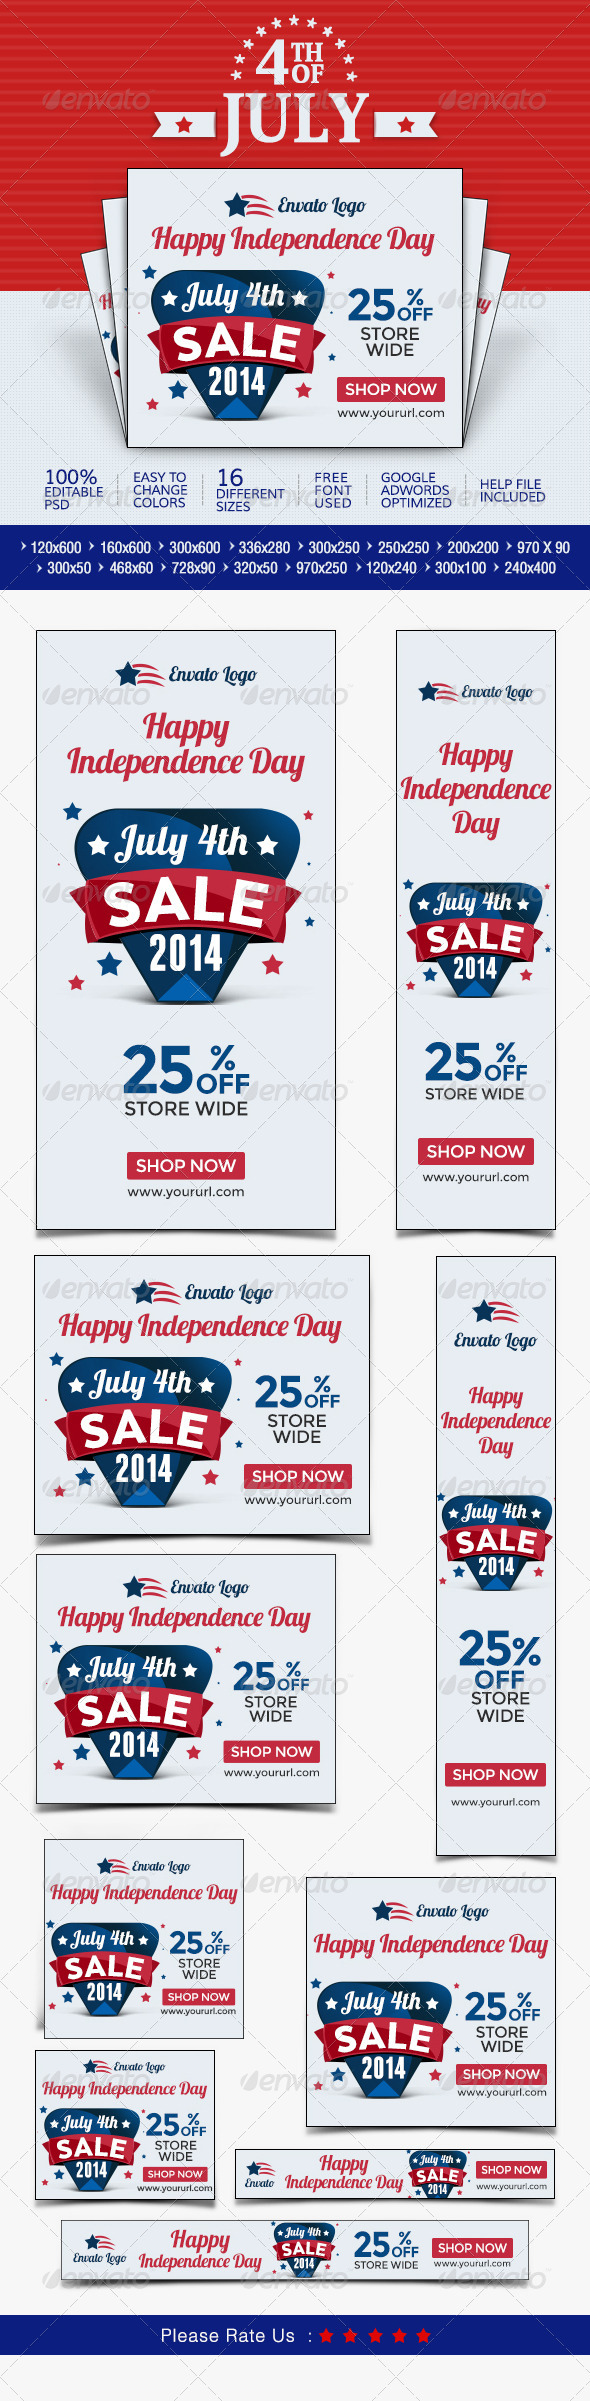 GraphicRiver July 4th Sale Banners 8044406